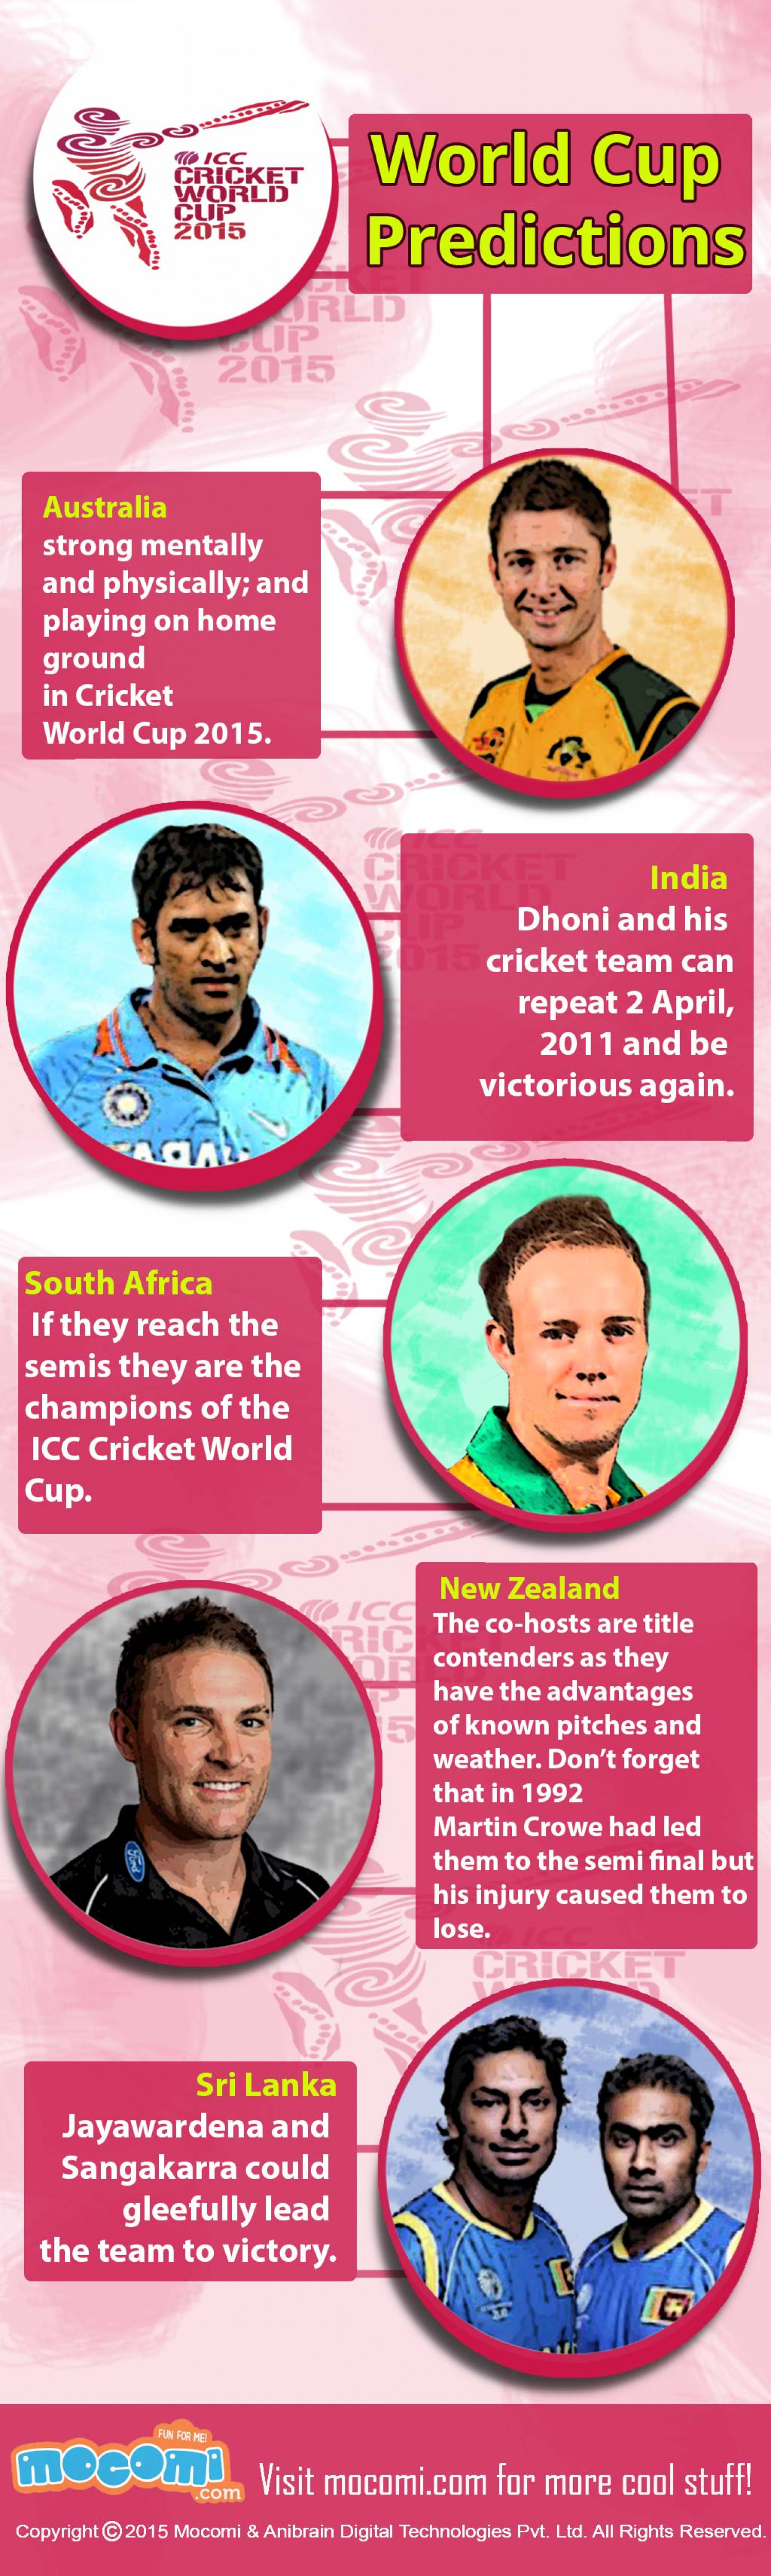 ICC Cricket World Cup 2015 : Predictions Infographic